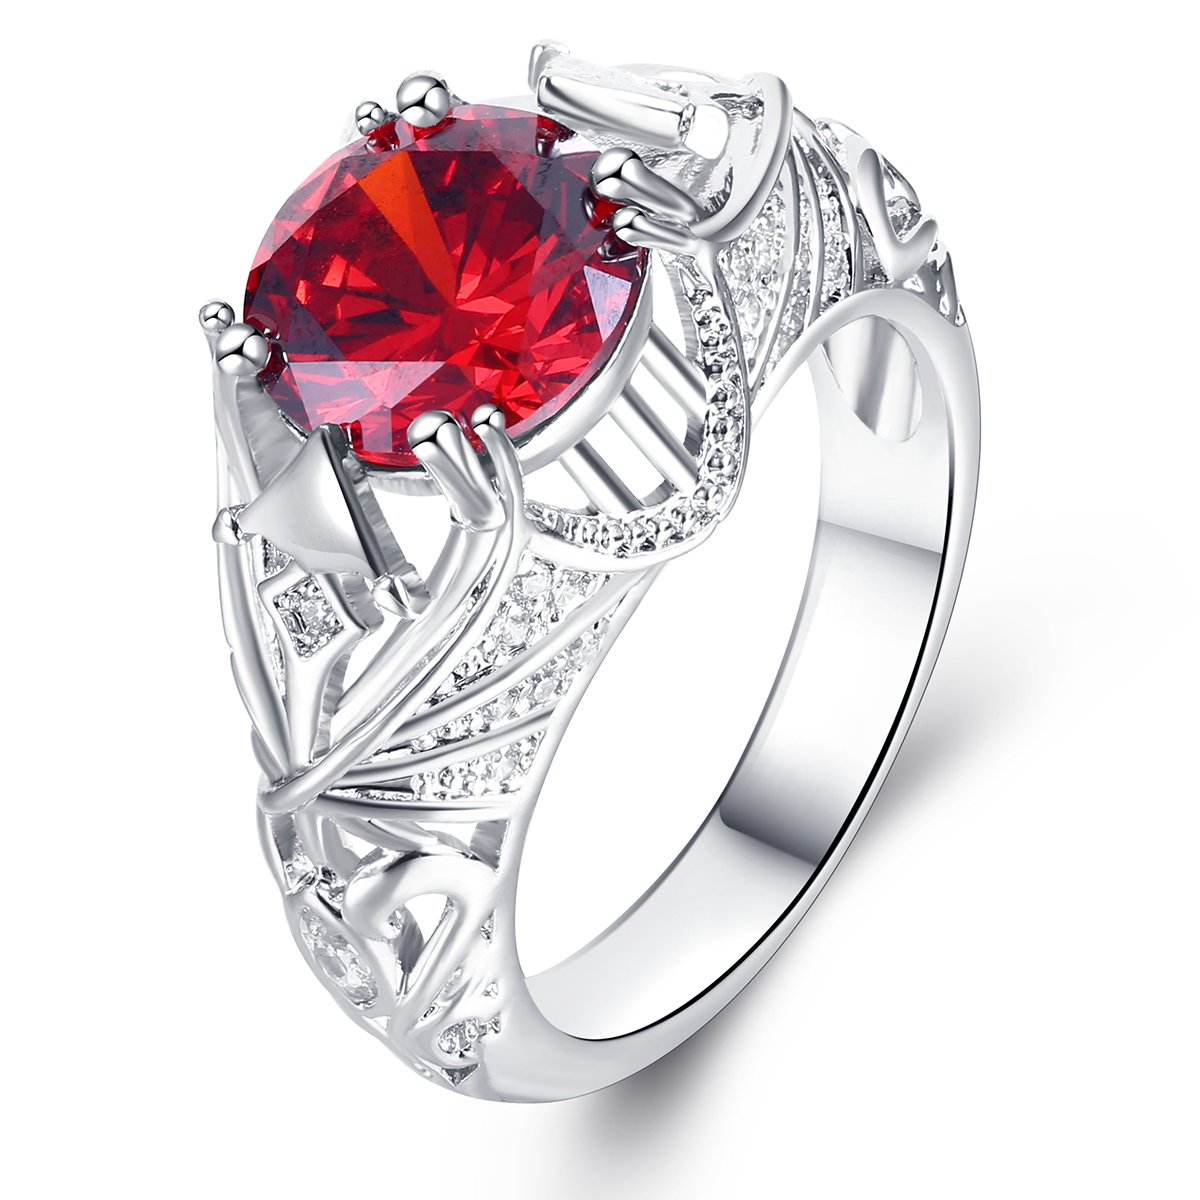 Women Rings Red AAA Cubic Zirconia Rhodium Plated Ring Luxury Engagement Party Wedding Jewelry Size 6 7 8 9 Jiangyue JWZ2547